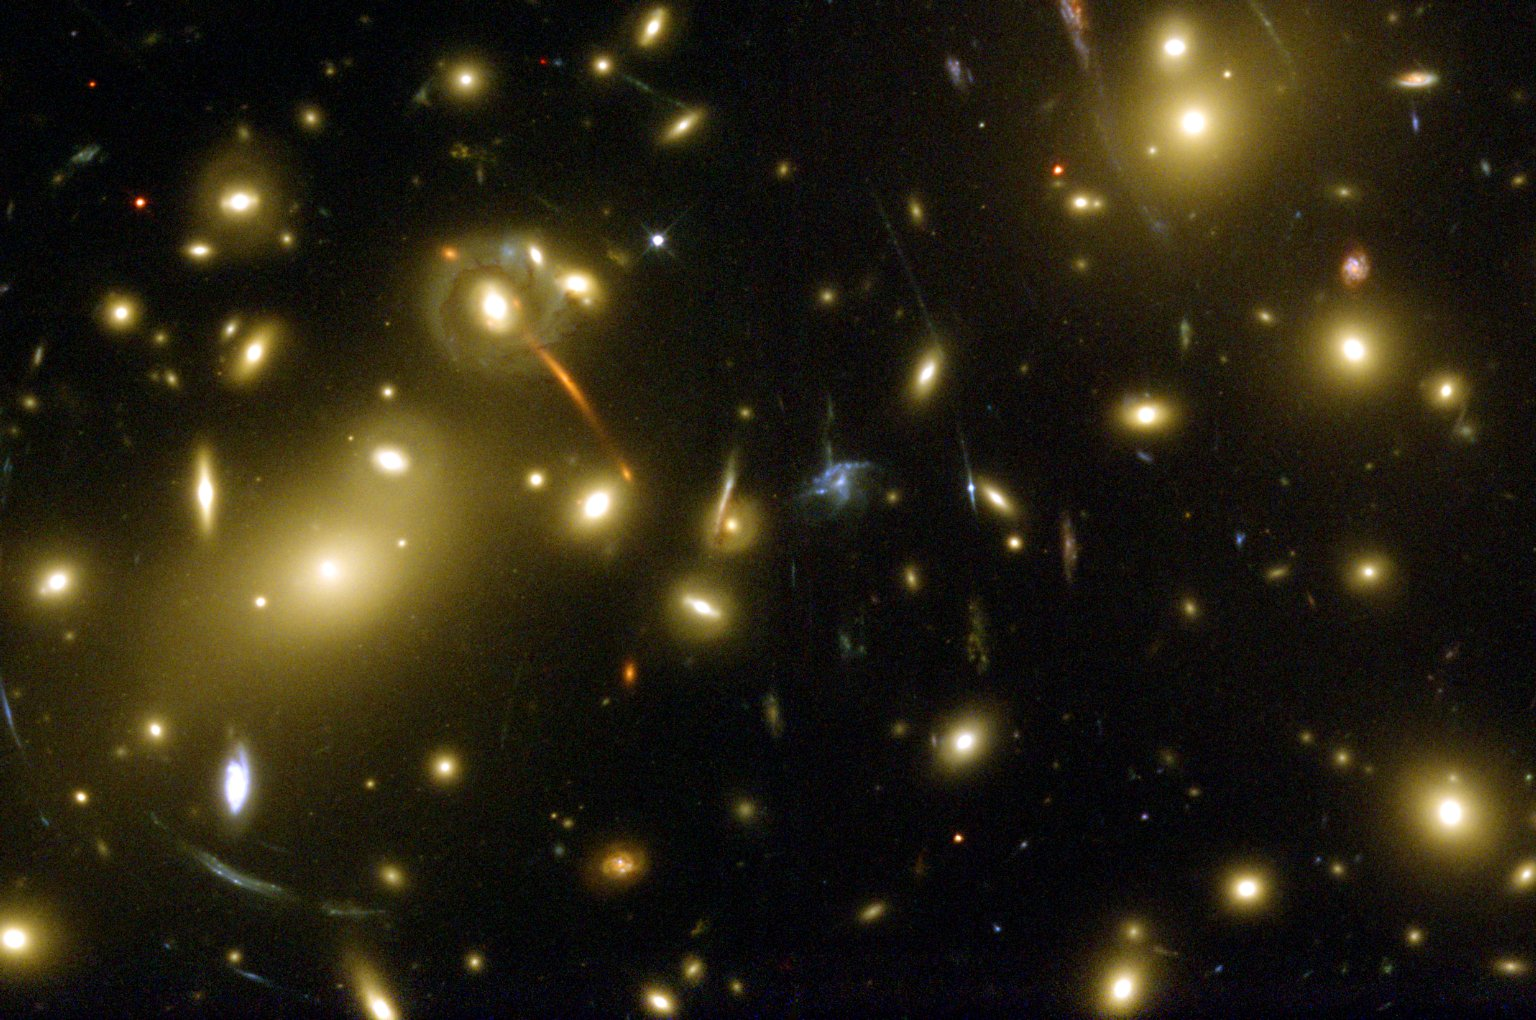 Gravitational Lens Helps Hubble and Keck Discover Galaxy Building Block